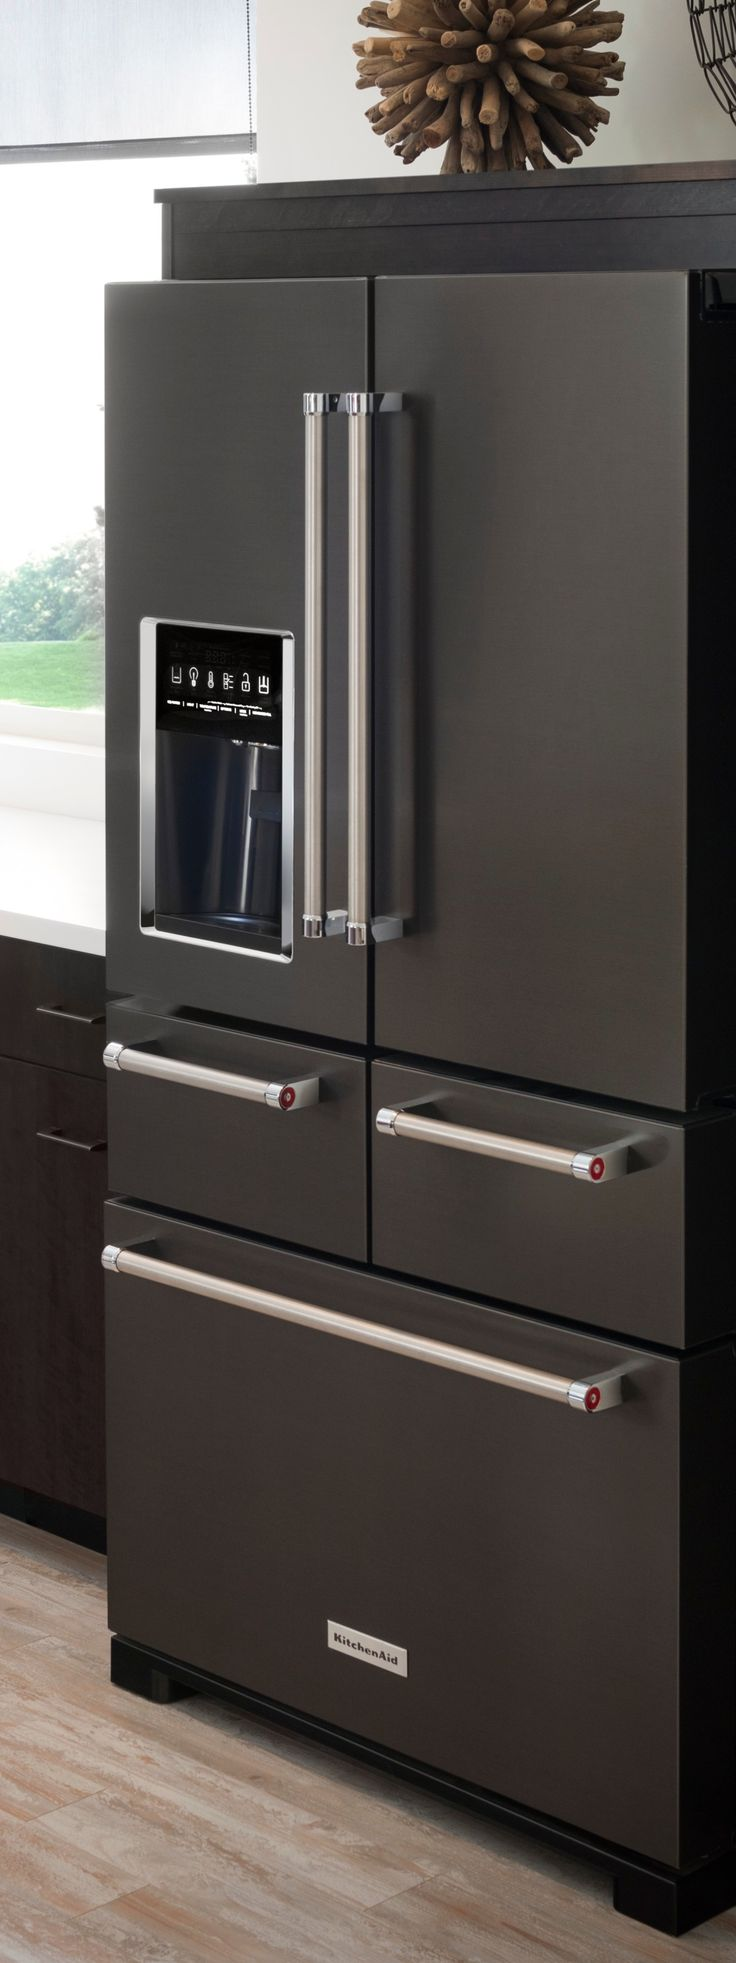 Black stainless steel appliances give your kitchen a bold, sleek look. KitchenAid's 5-door refrigerator has the cool factor, plus its configuration offers simplified food storage and access.